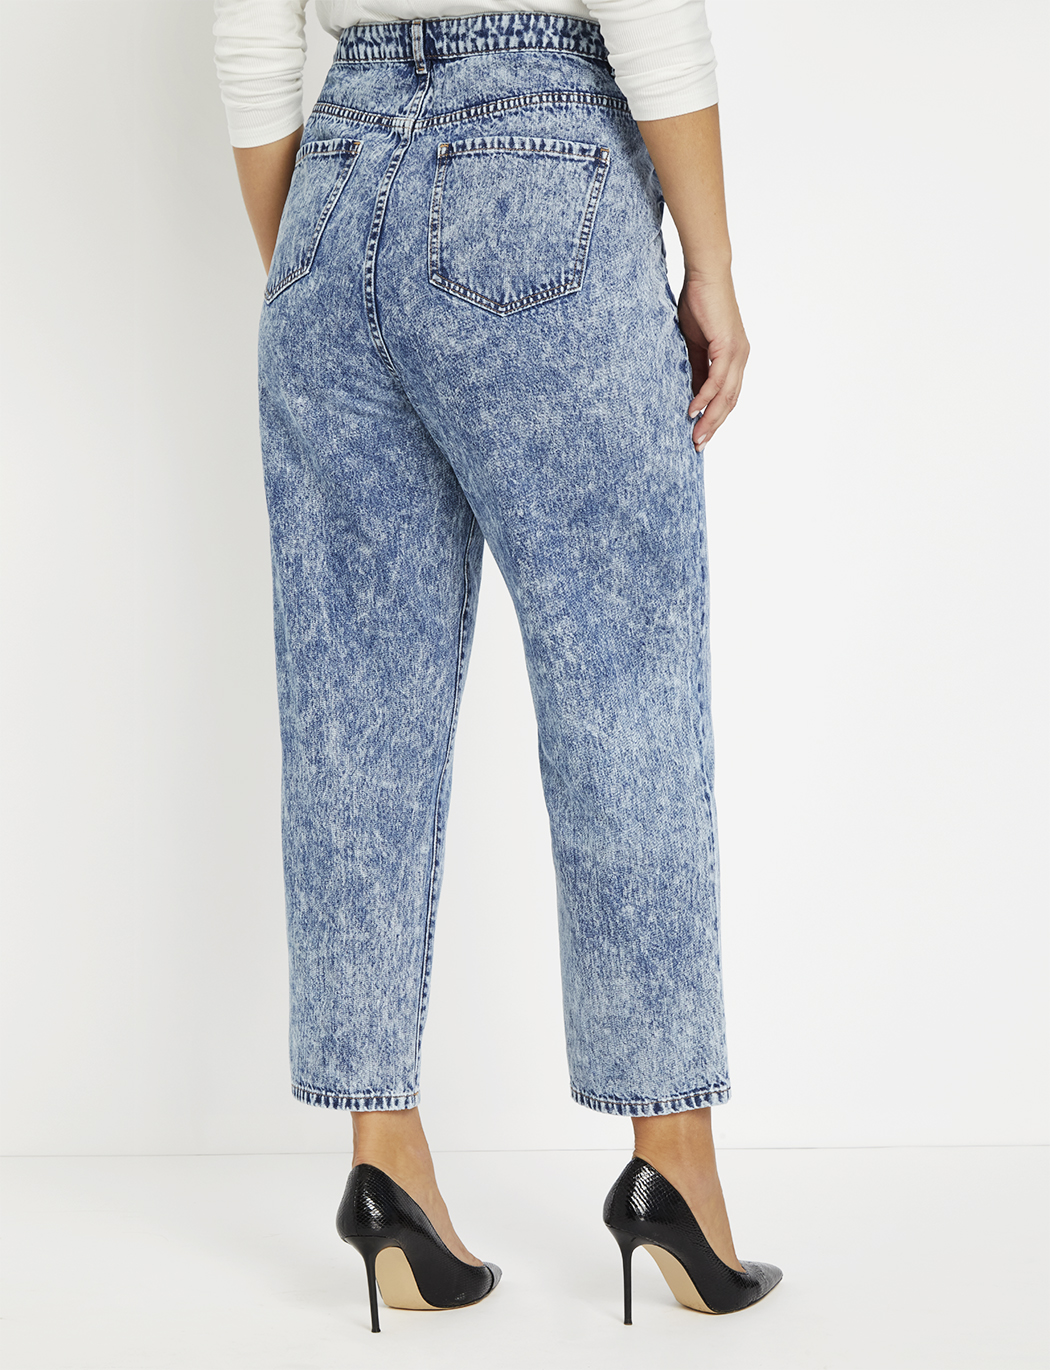 Button Fly Relaxed Fit Jean